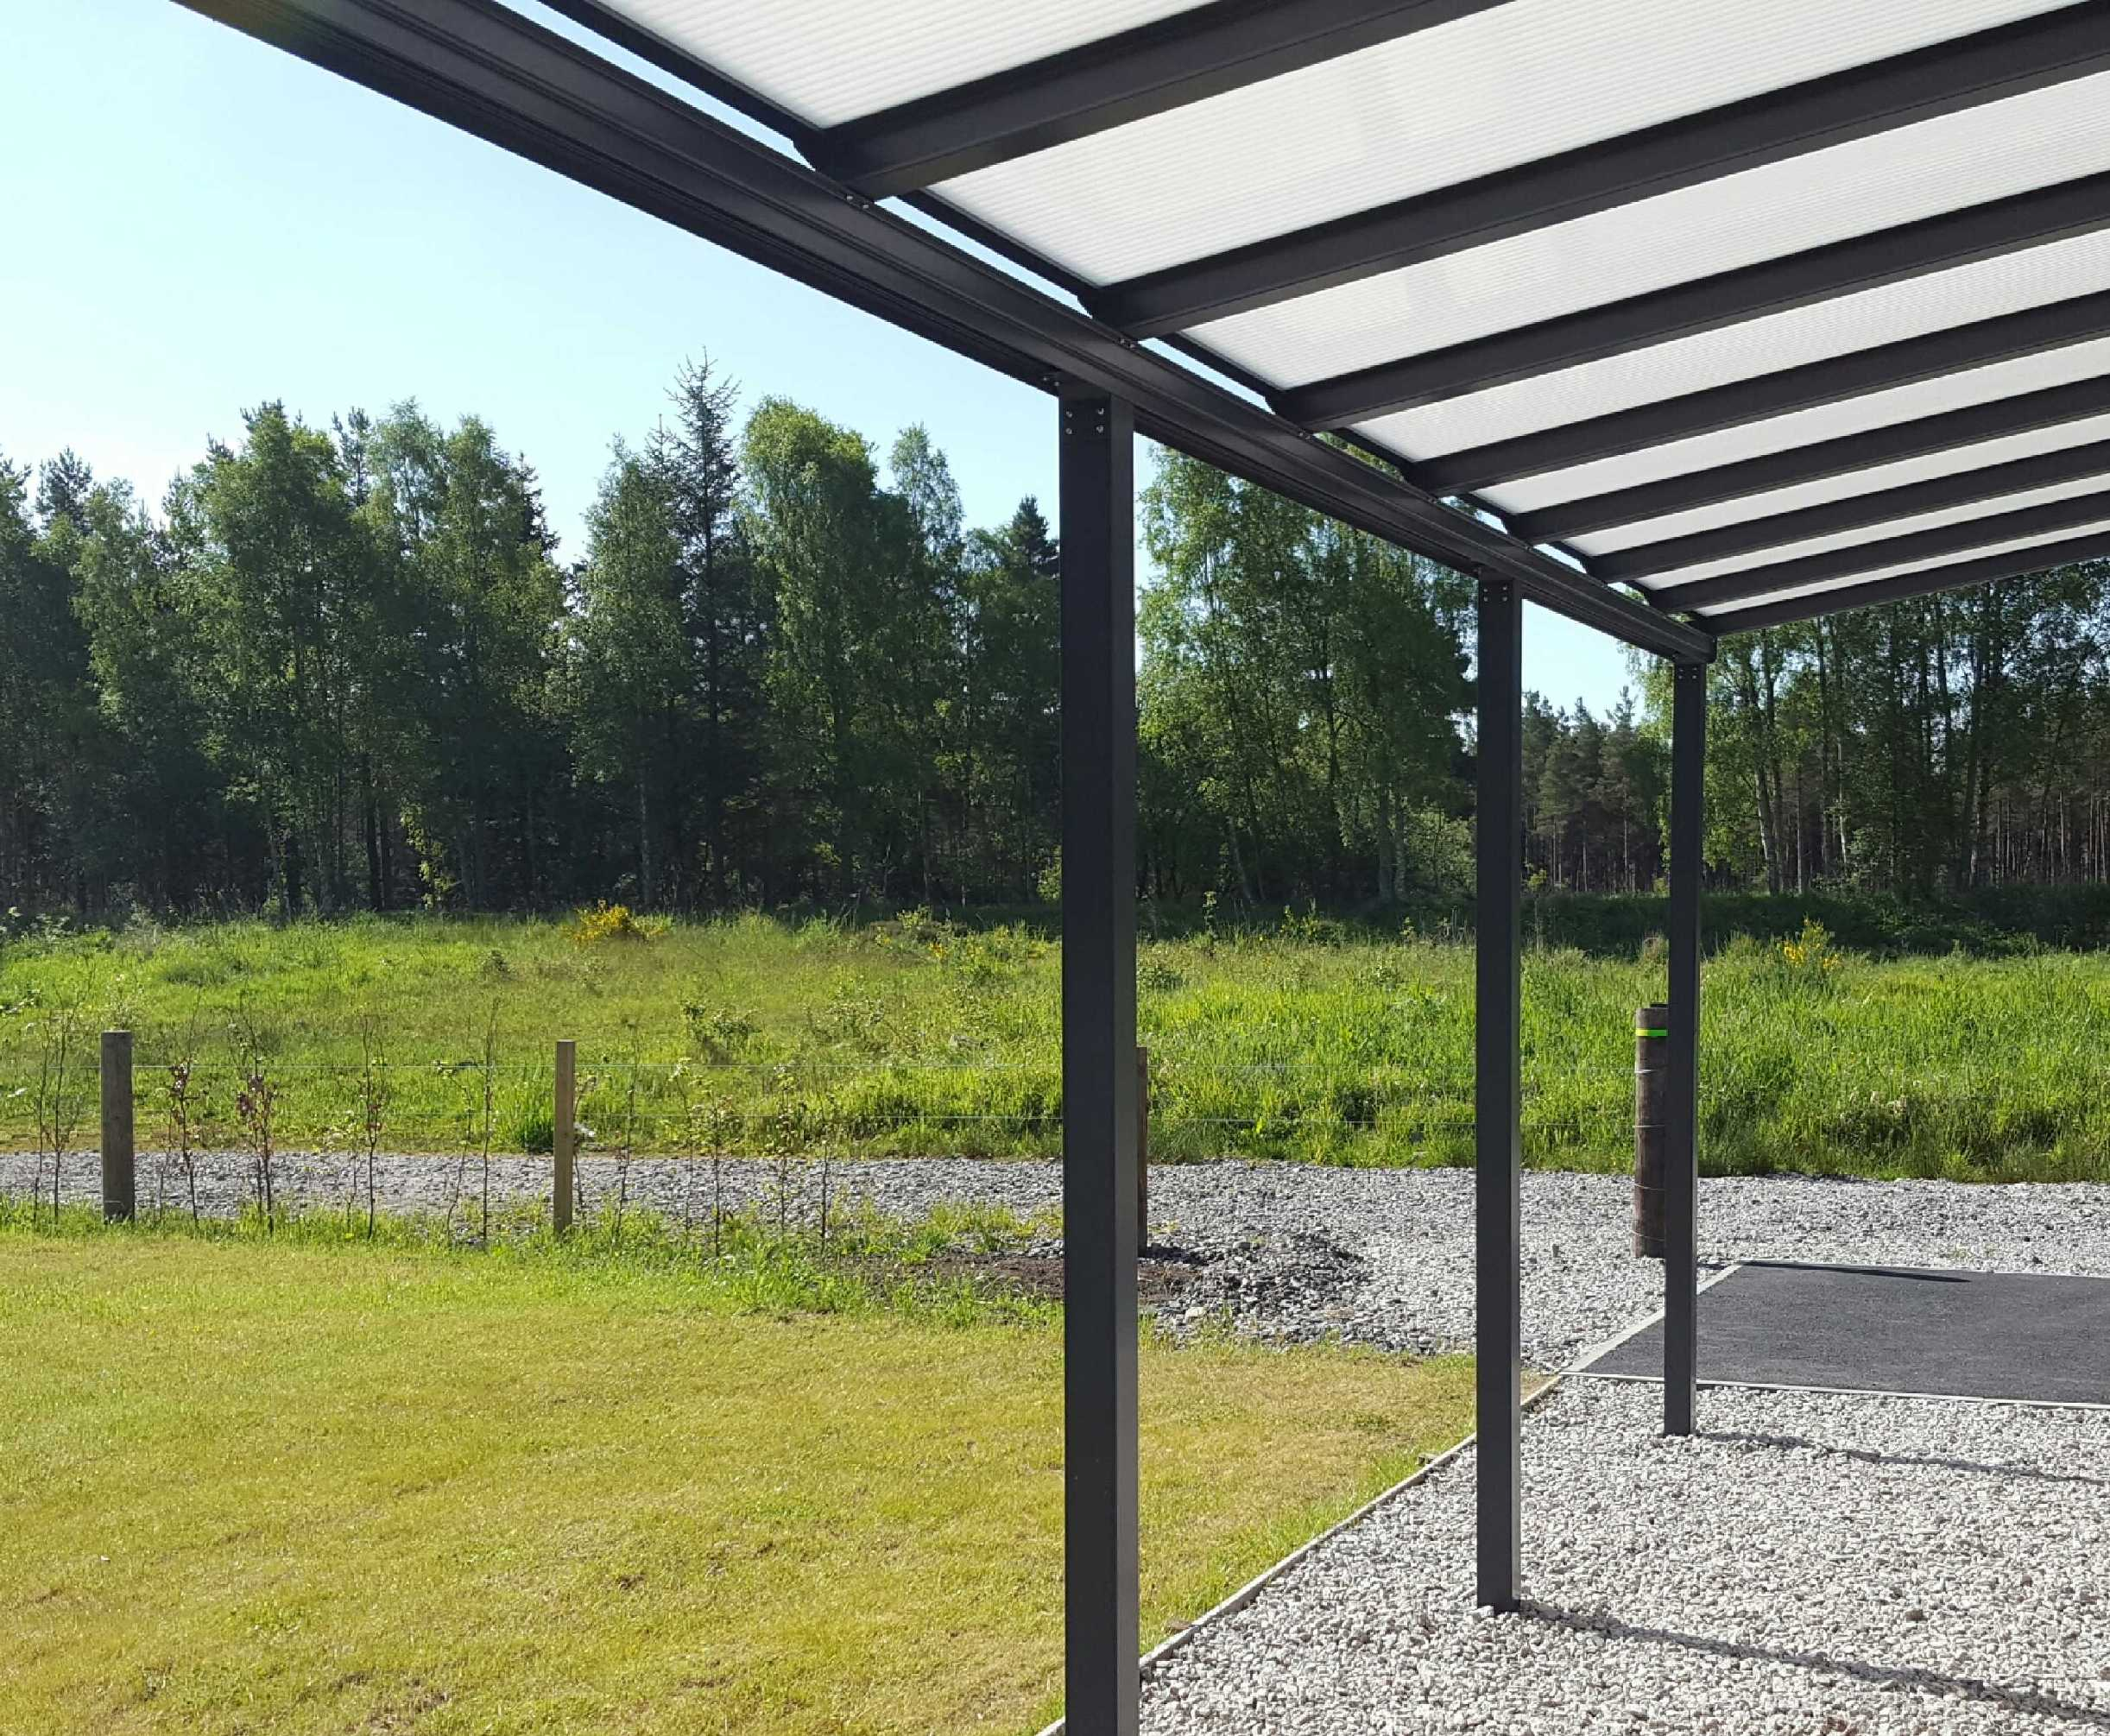 Omega Smart Lean-To Canopy, Anthracite Grey, 16mm Polycarbonate Glazing - 2.1m (W) x 2.0m (P), (2) Supporting Posts